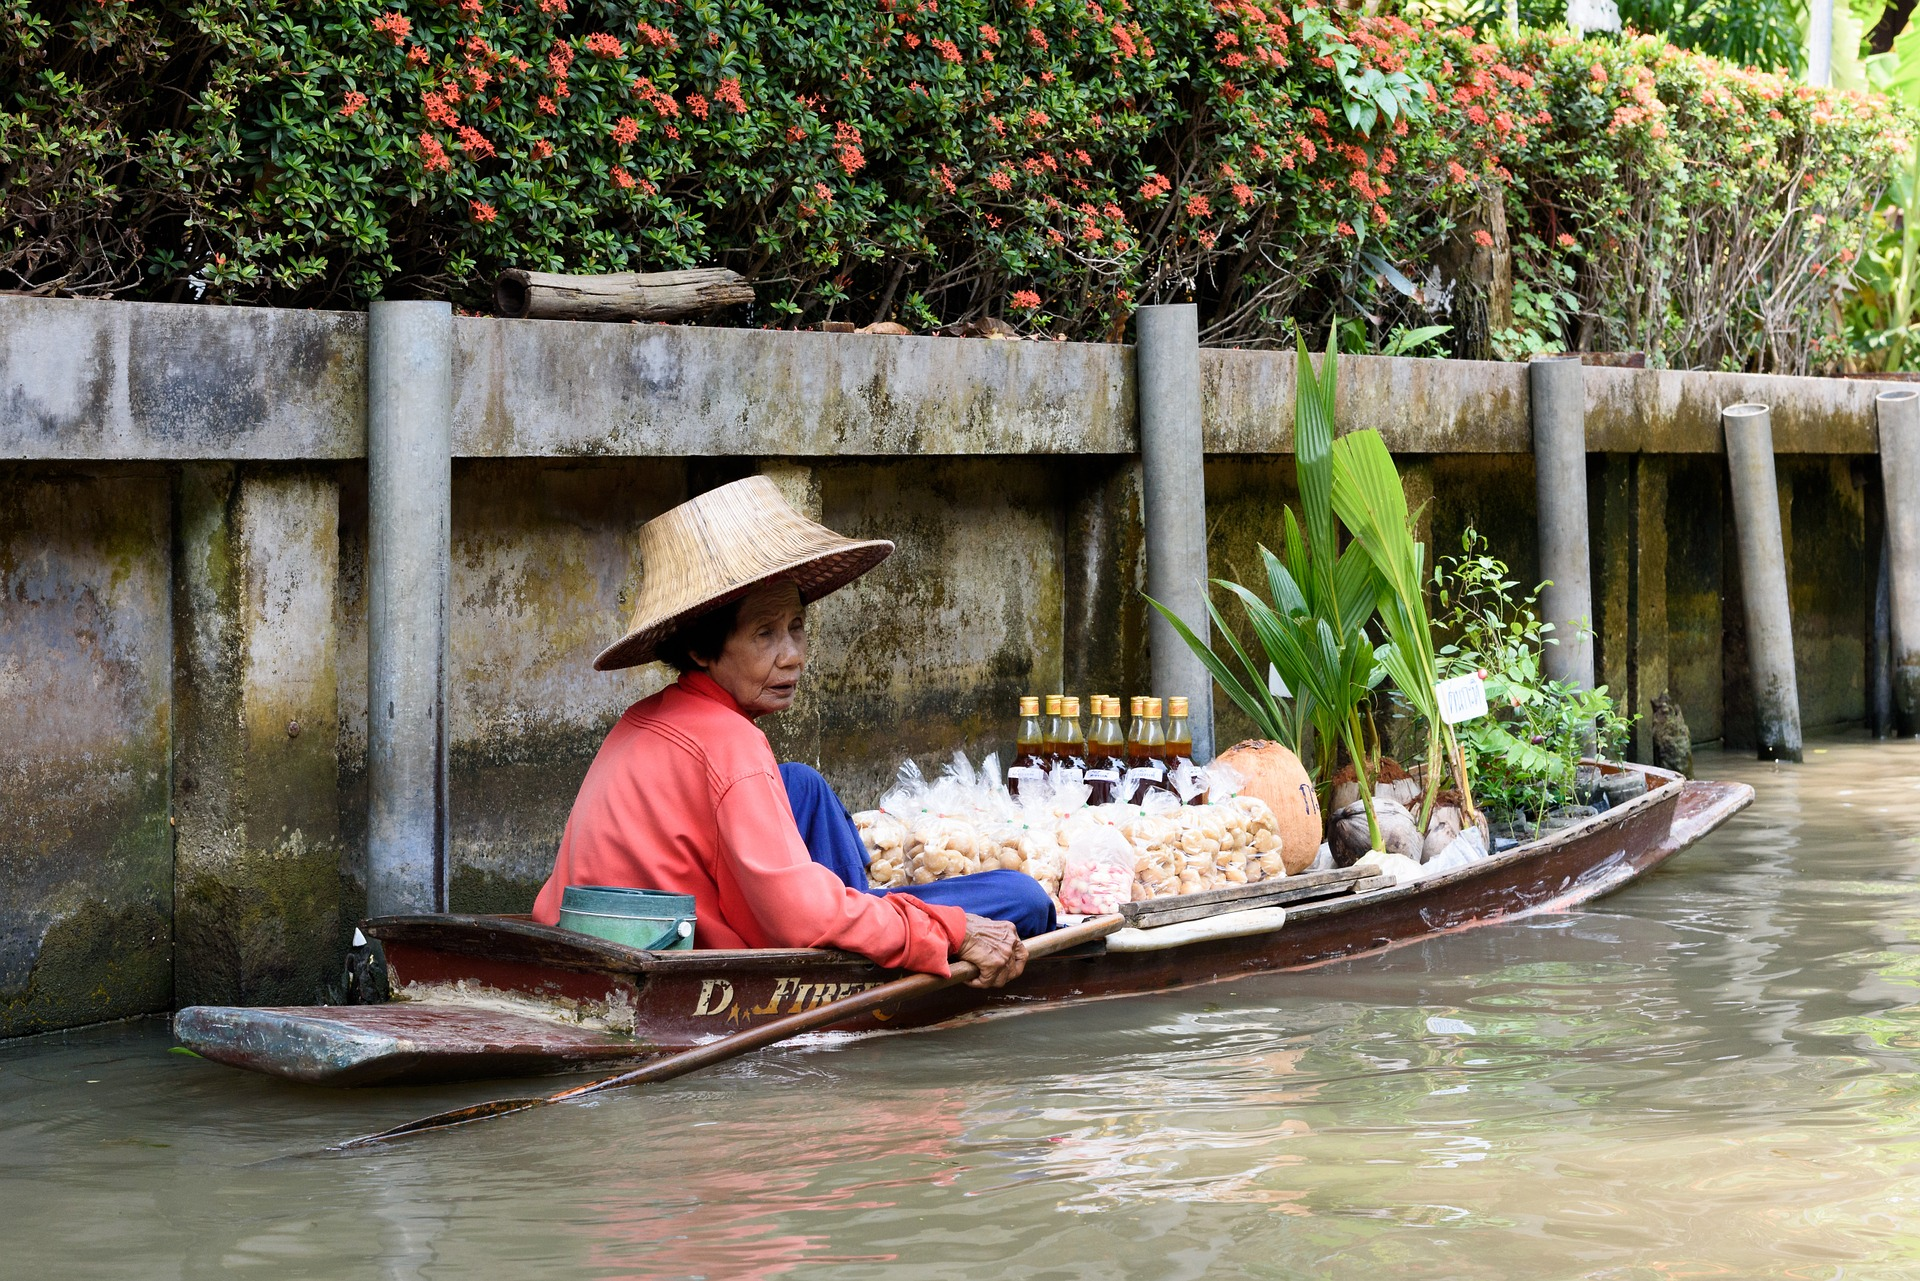 Vendor on the floating market in Thailand.